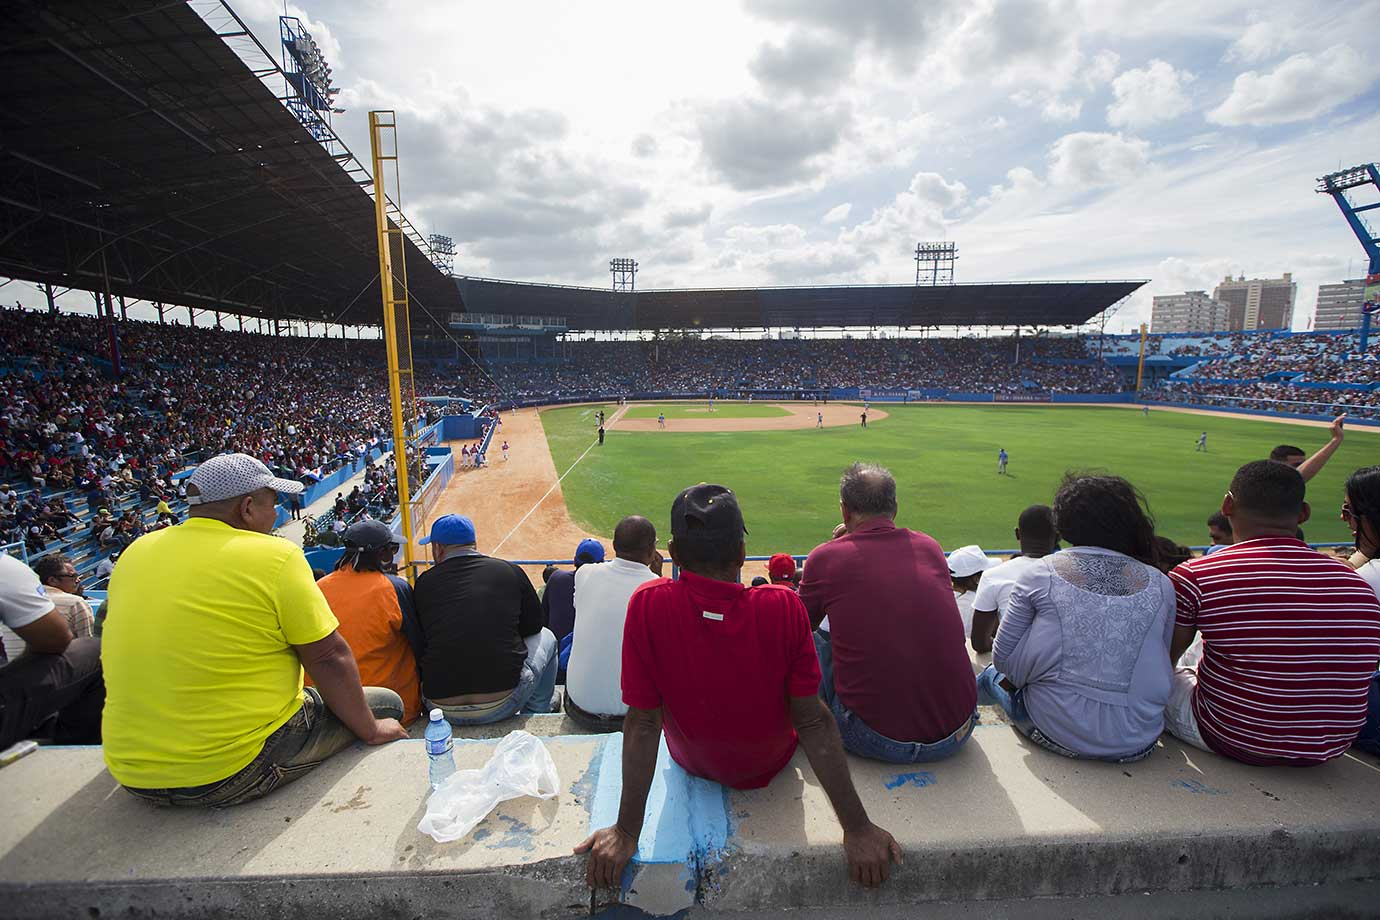 Fans watch the game between the Tampa Bay Rays and Cuban national team.